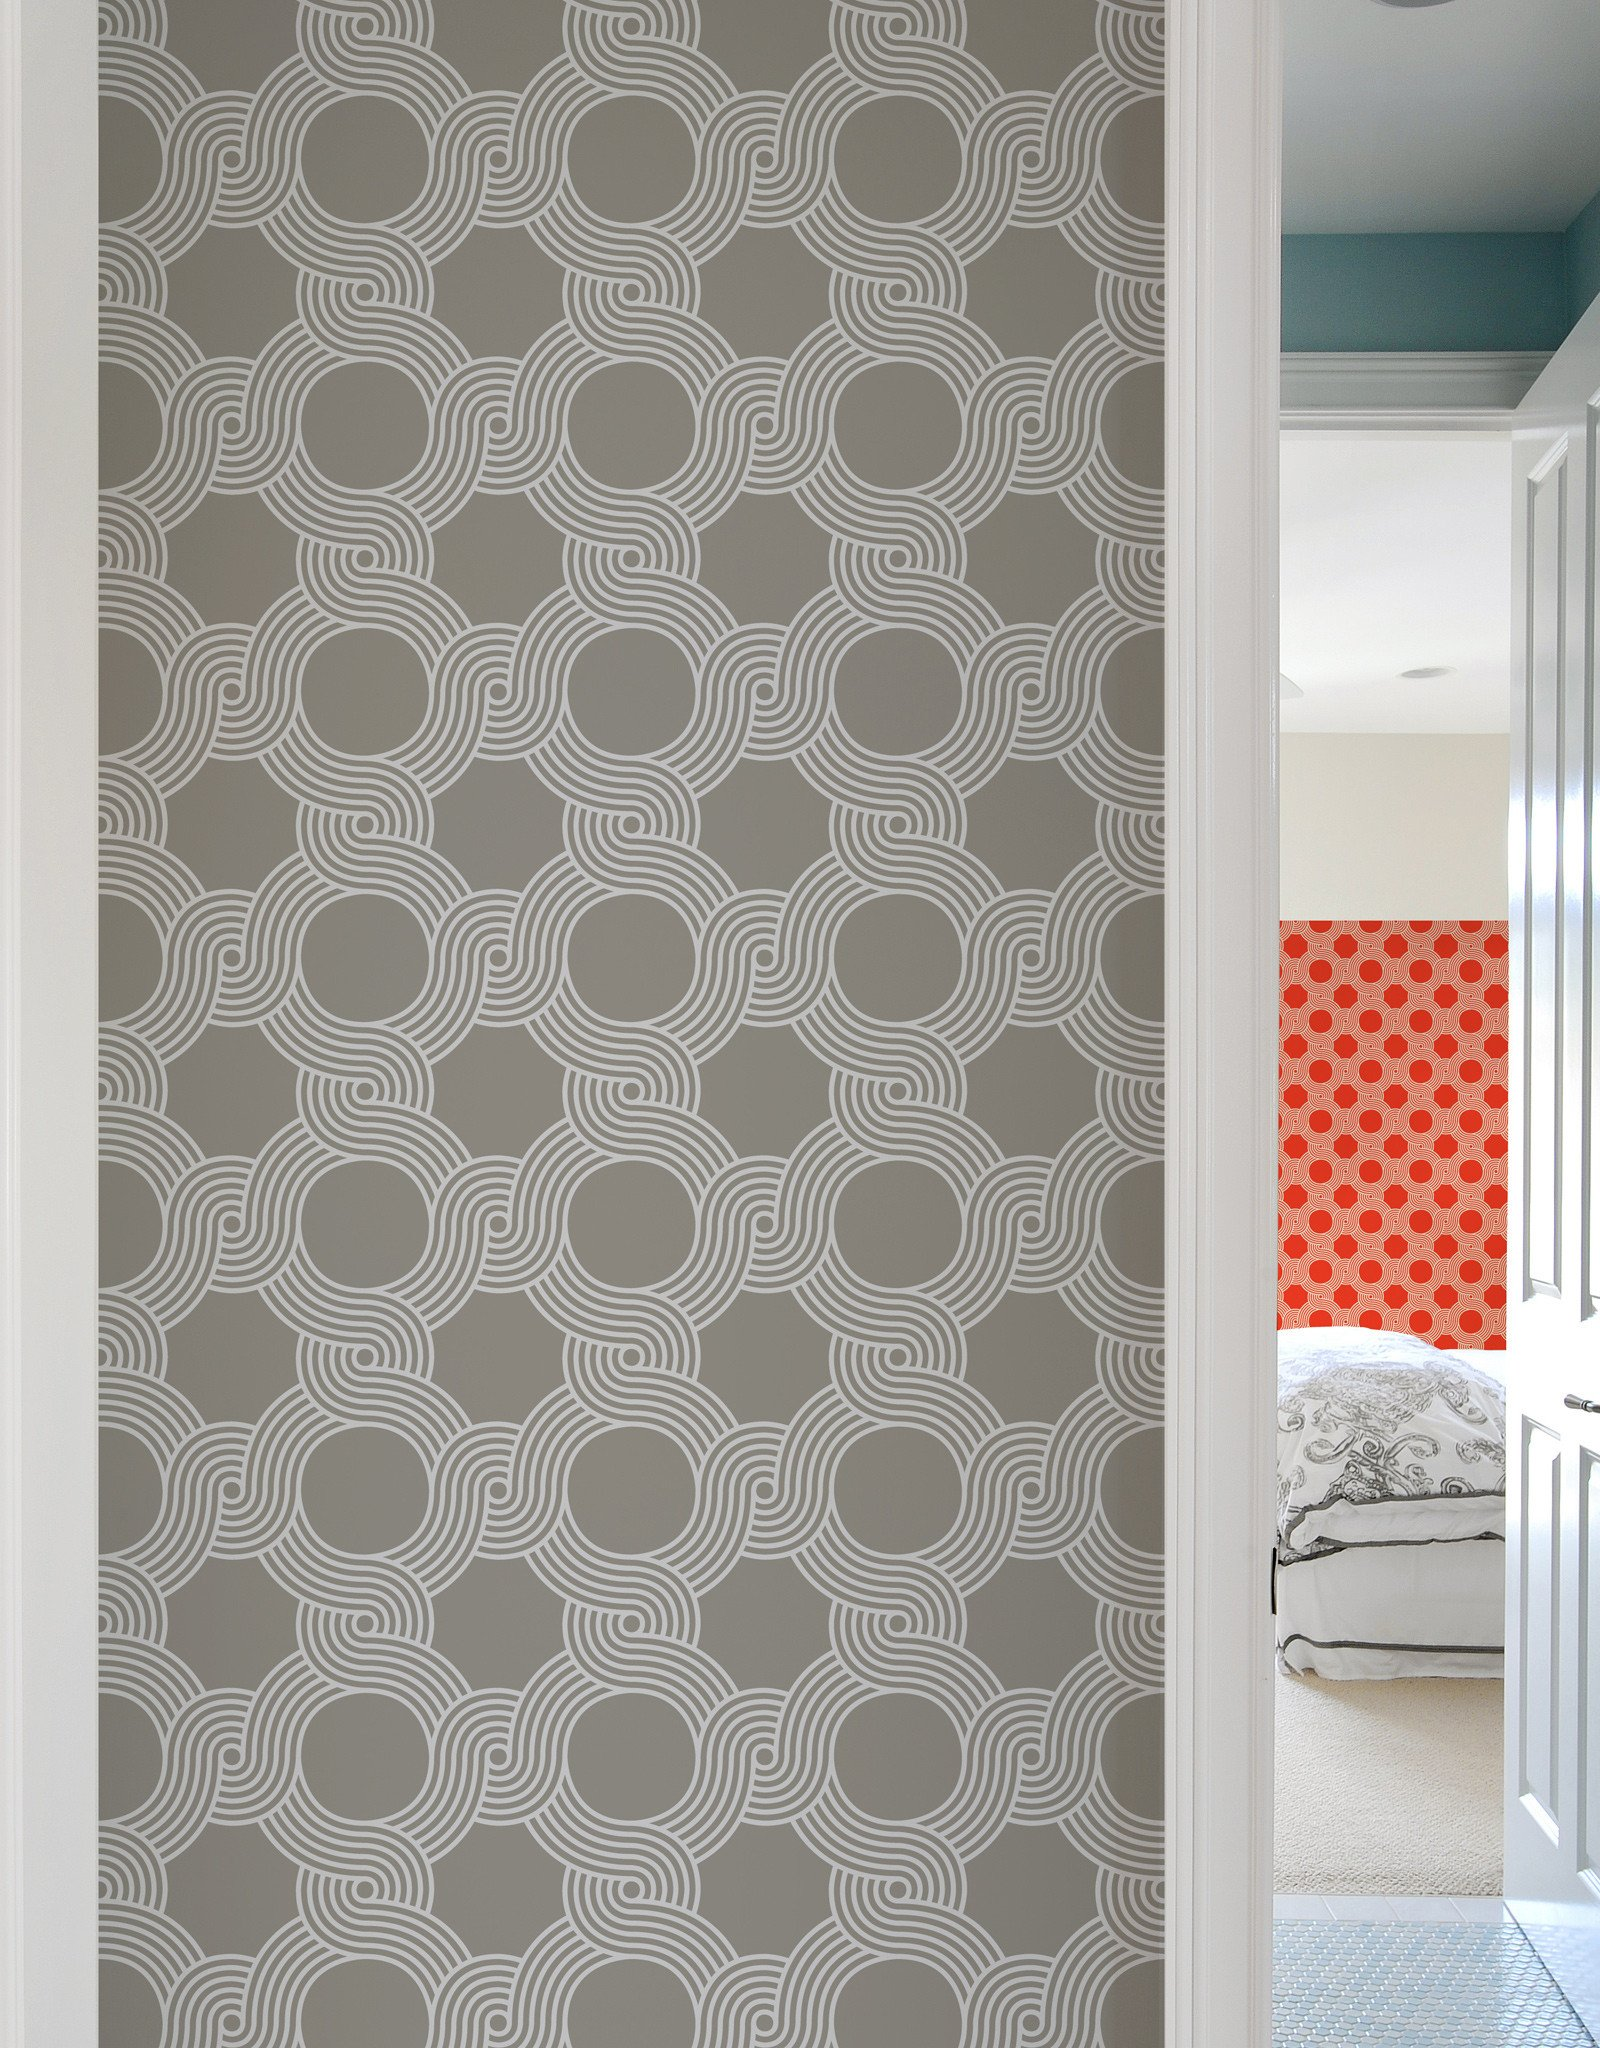 Ten pattern wall tiles patterned wall tiles wall tiles and